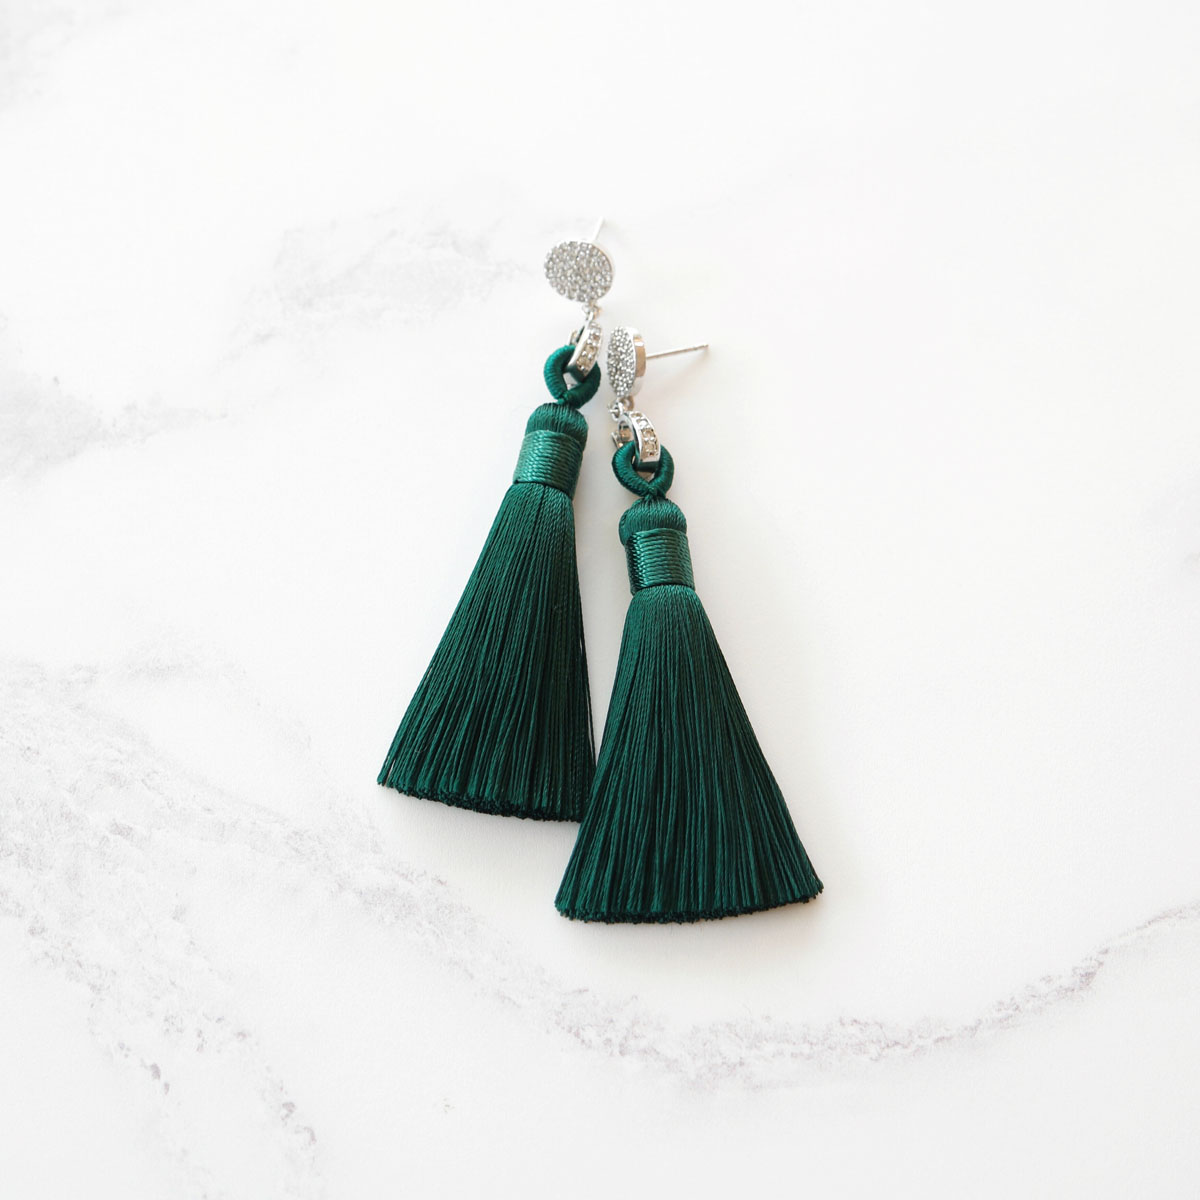 Kairos Necklace: Emerald Green Tassel Earrings